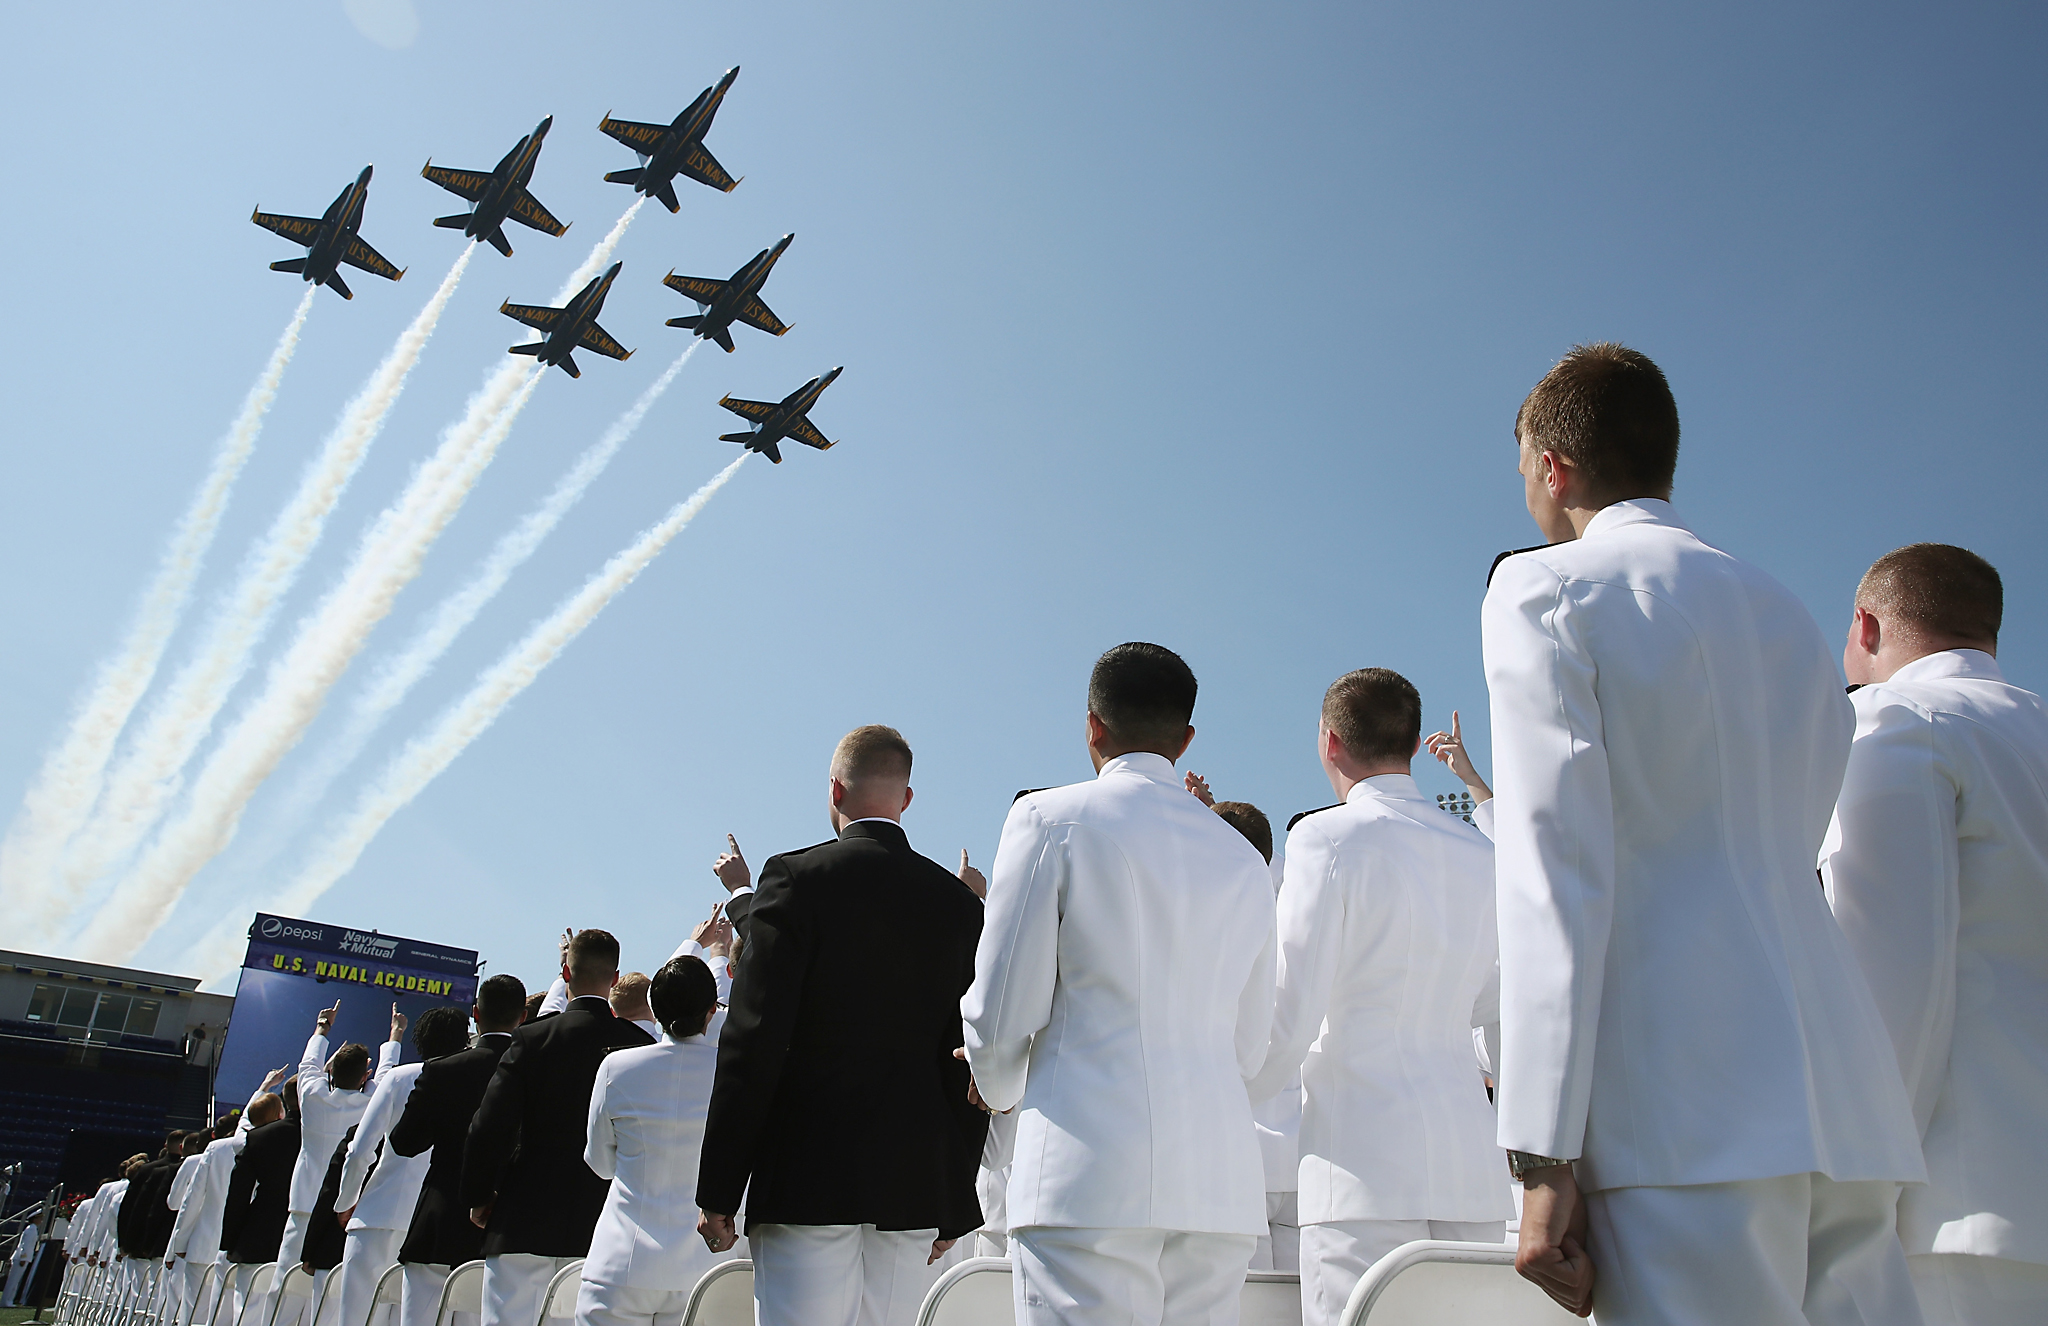 ANNAPOLIS, MD - MAY 27: The U.S. Navy Blue Angels fly over graduation ceremonies at the U.S. Naval Academy May 27, 2016 in Annapolis, Maryland.  U.S. Secretary of Defense Ashton Carter is the commencement speaker for this year's graduating class.  (Photo by Mark Wilson/Getty Images)